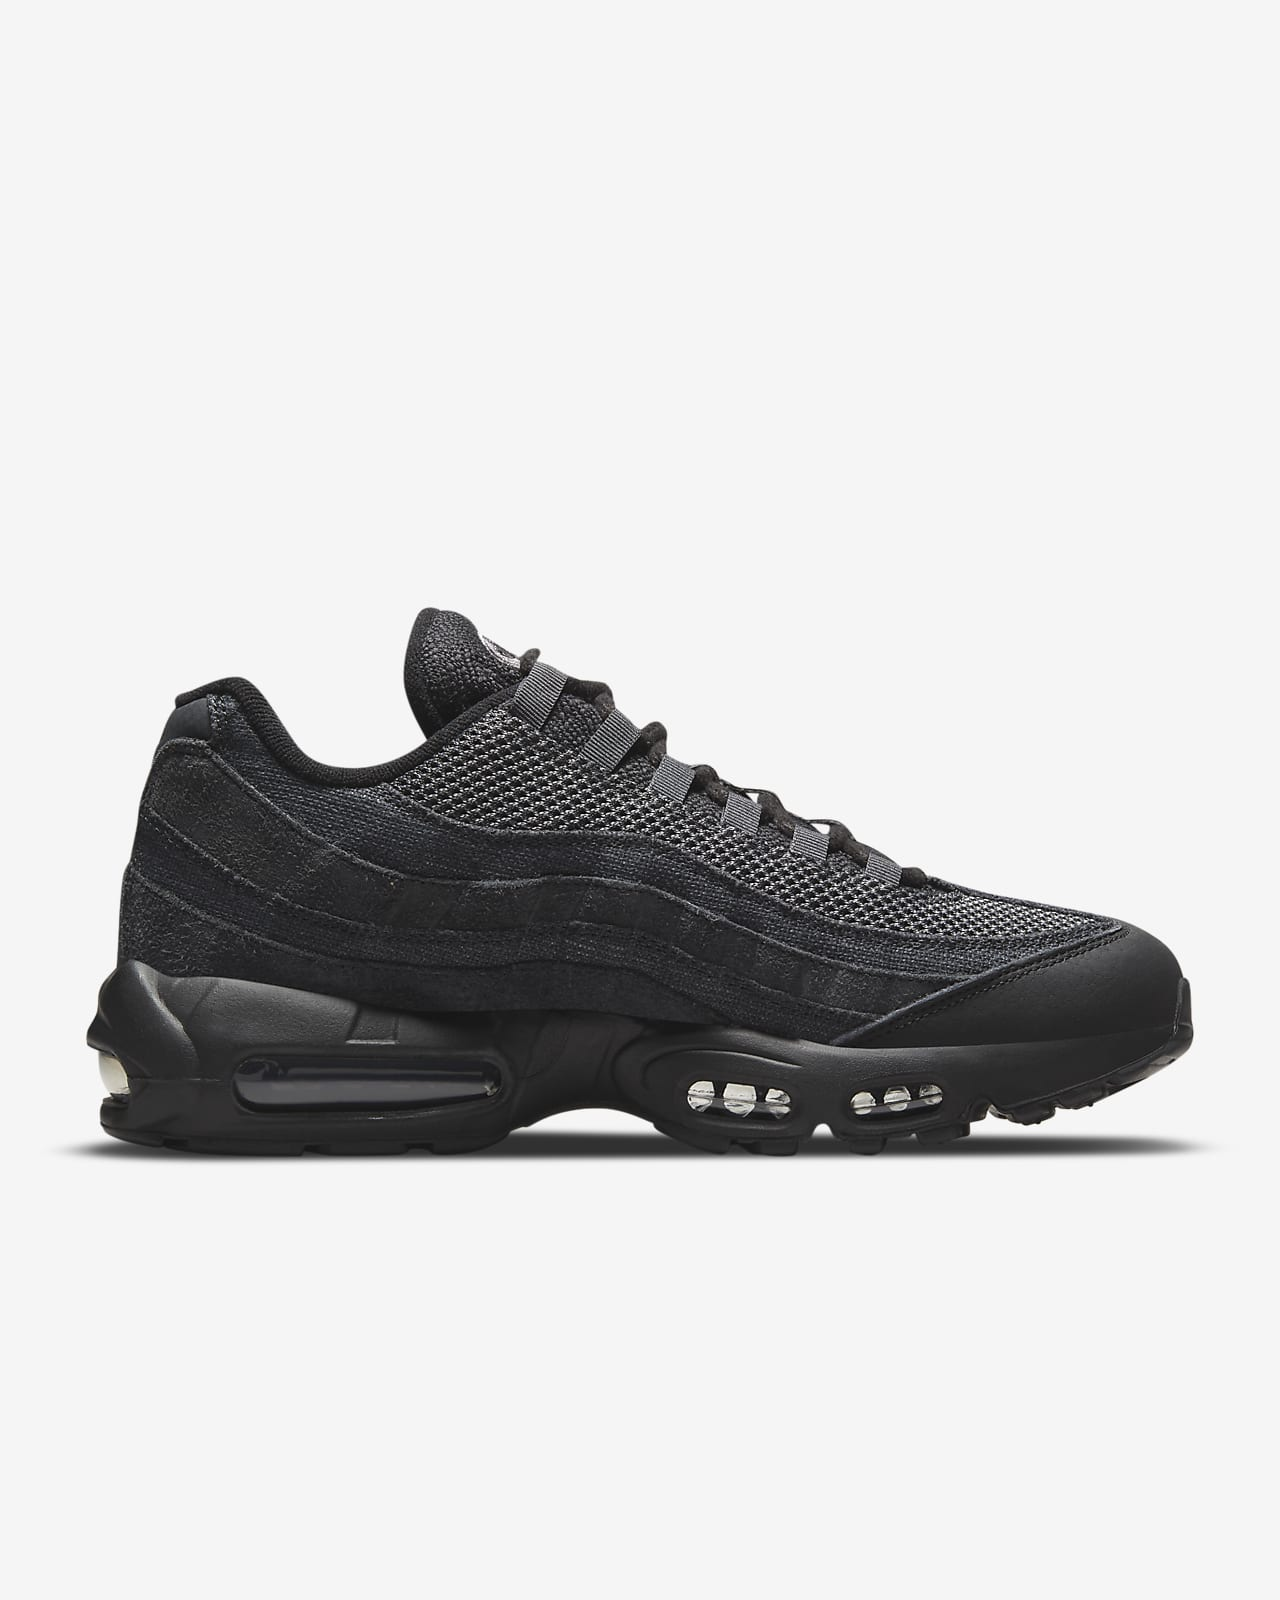 Chaussure Nike Air Max 95 OG pour Homme. Nike LU